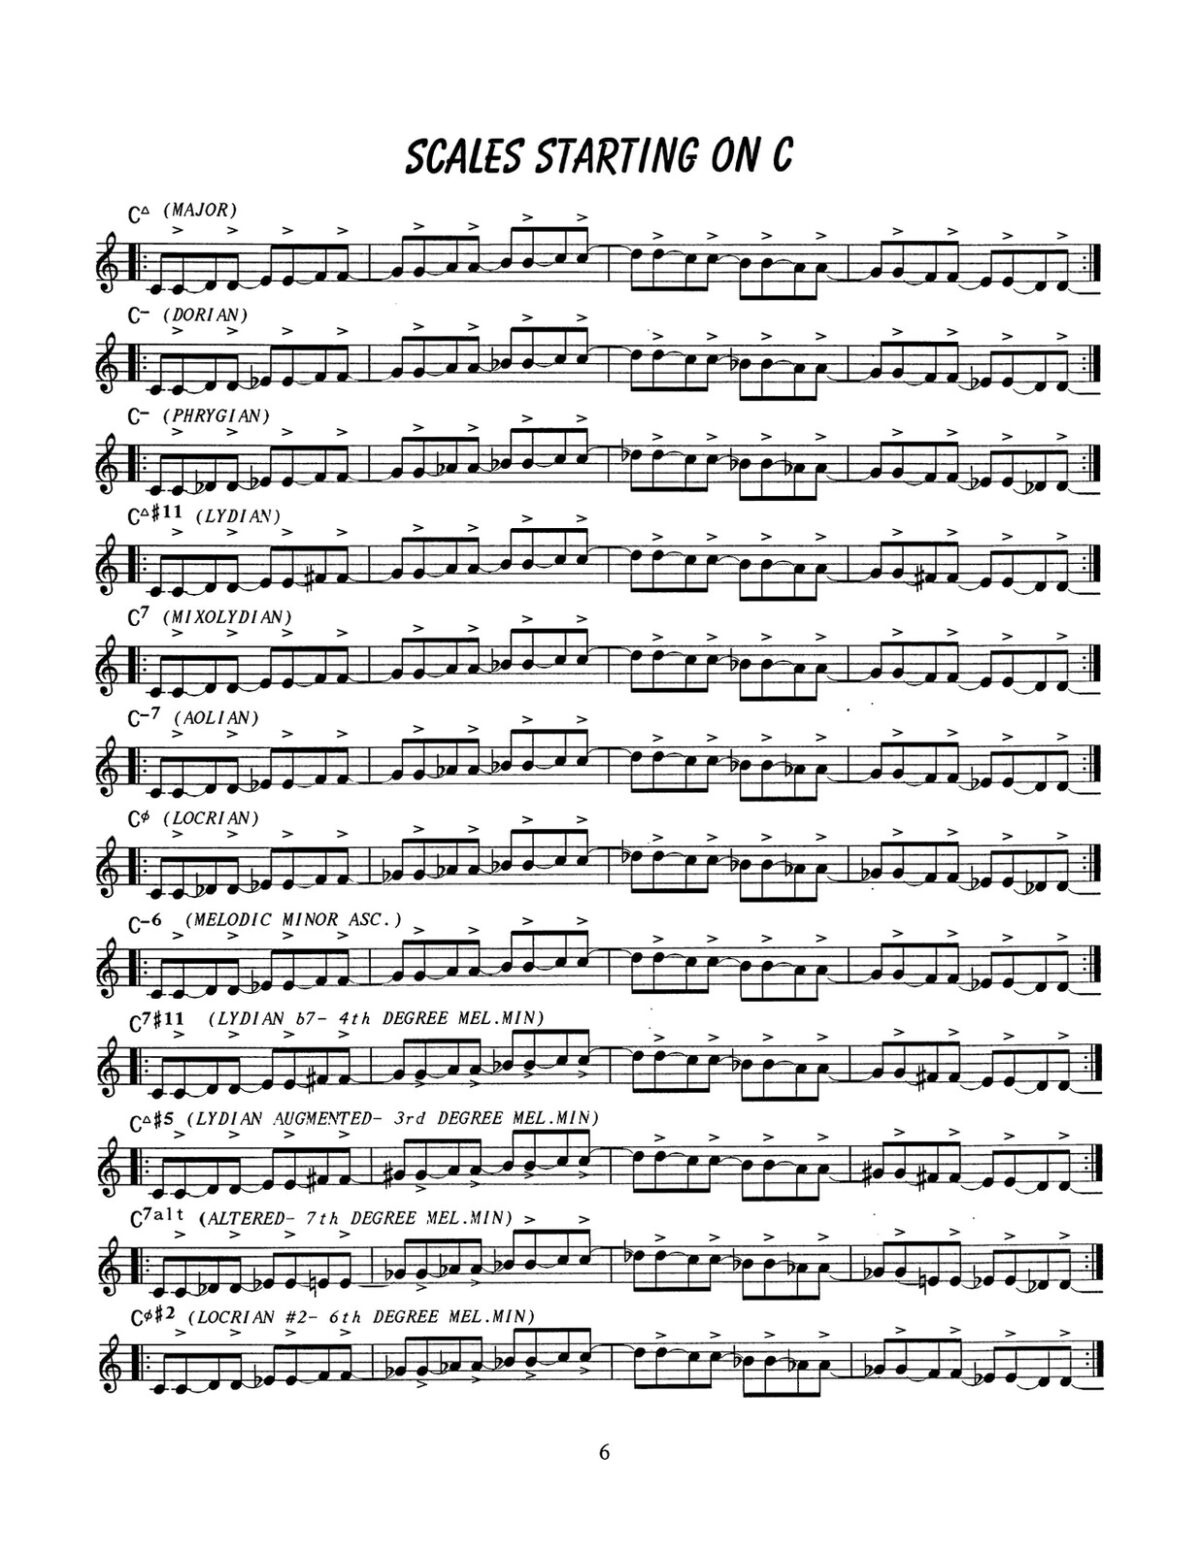 D'Aveni, Jazz Trumpet Technique Vol.4 Articulation-p08